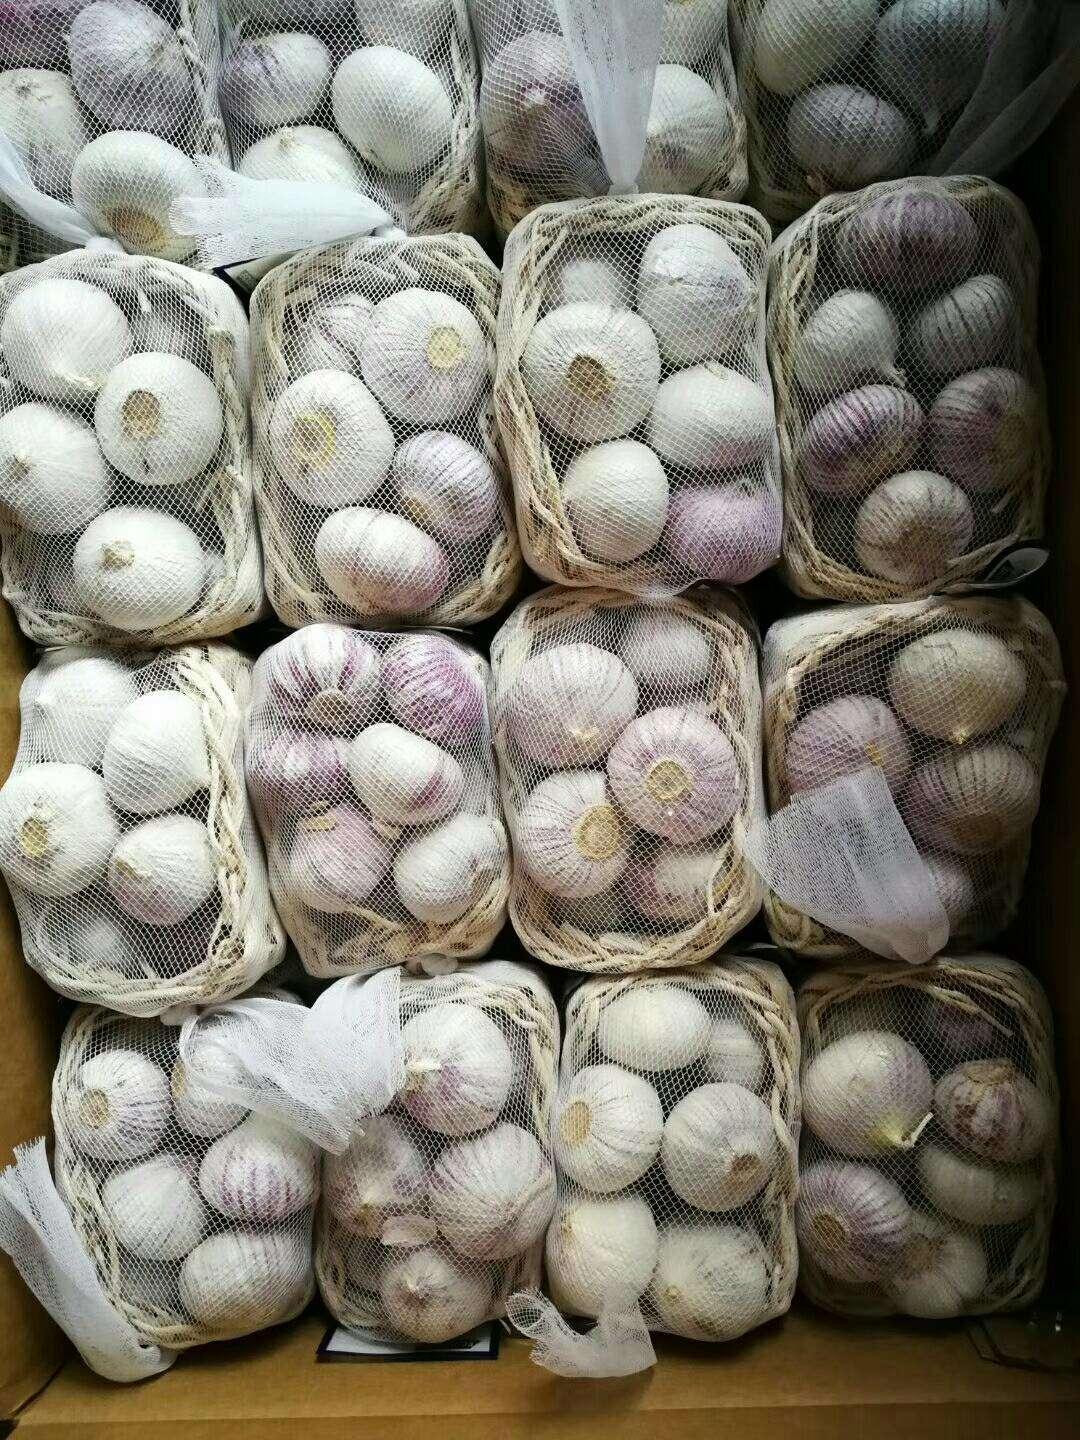 2019 Feb.12th China Garlic Price Increased.